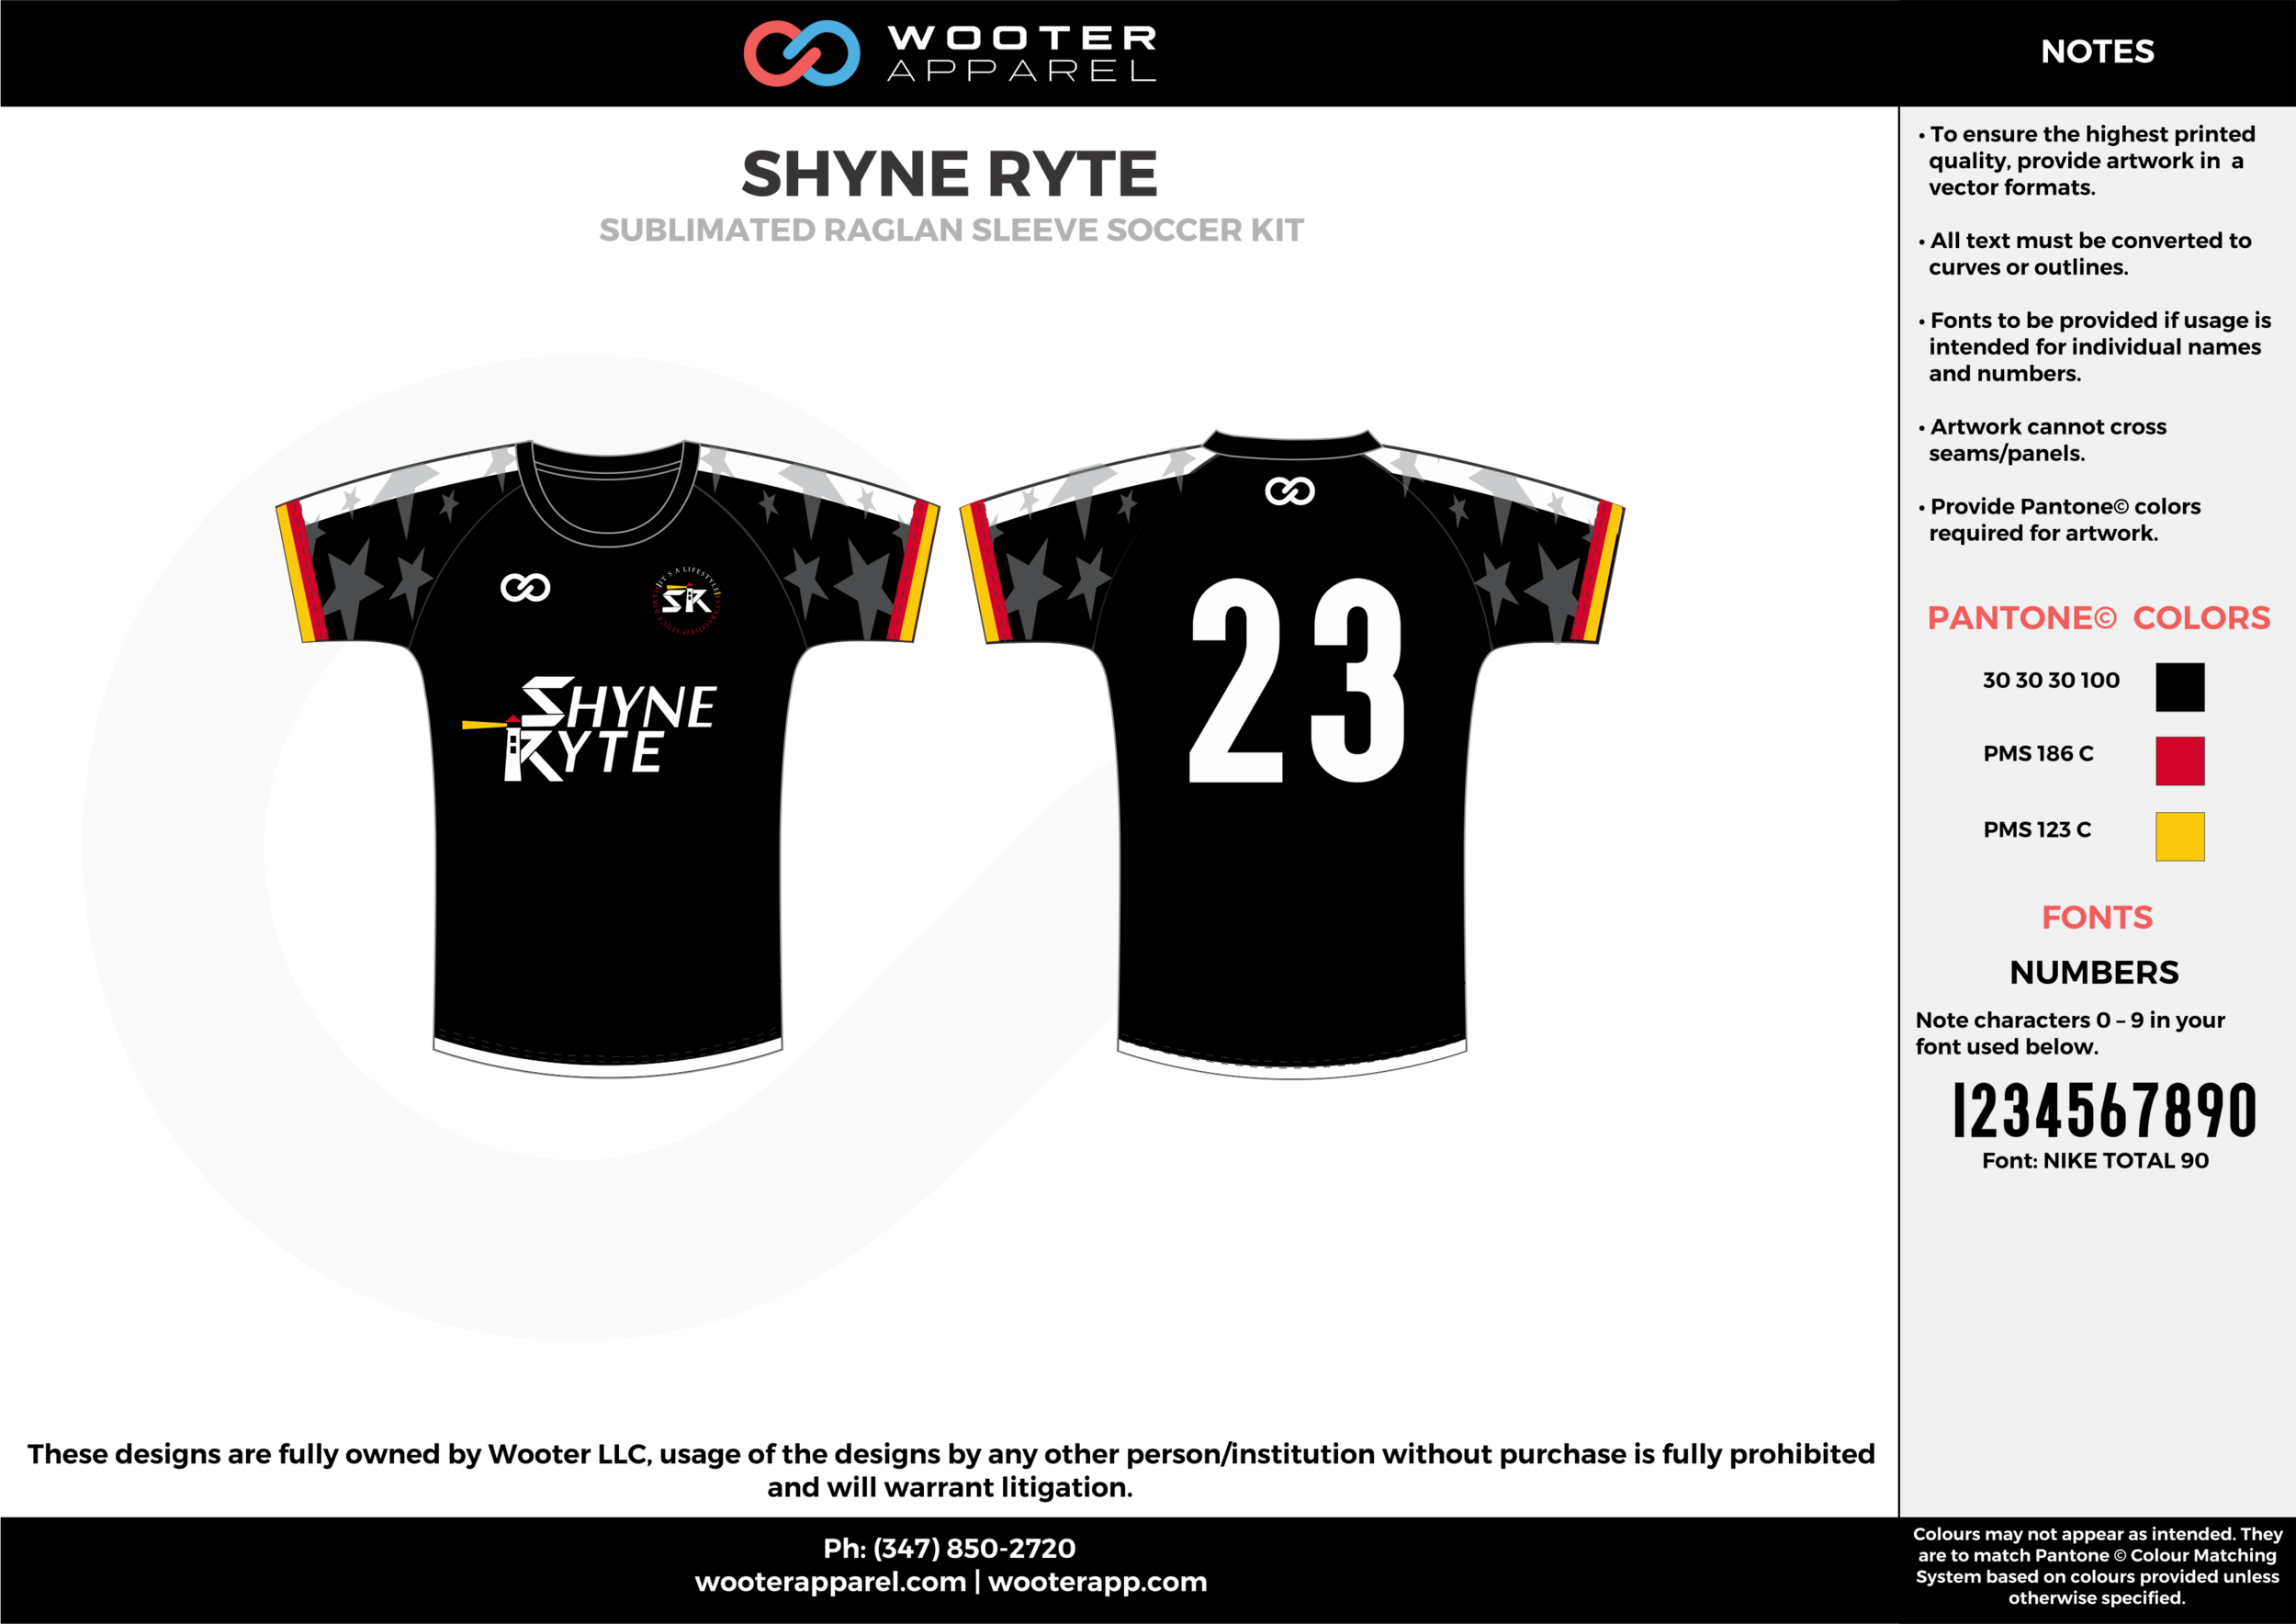 SHYNE RYTE black red yellow custom sublimated soccer uniform jersey shirt